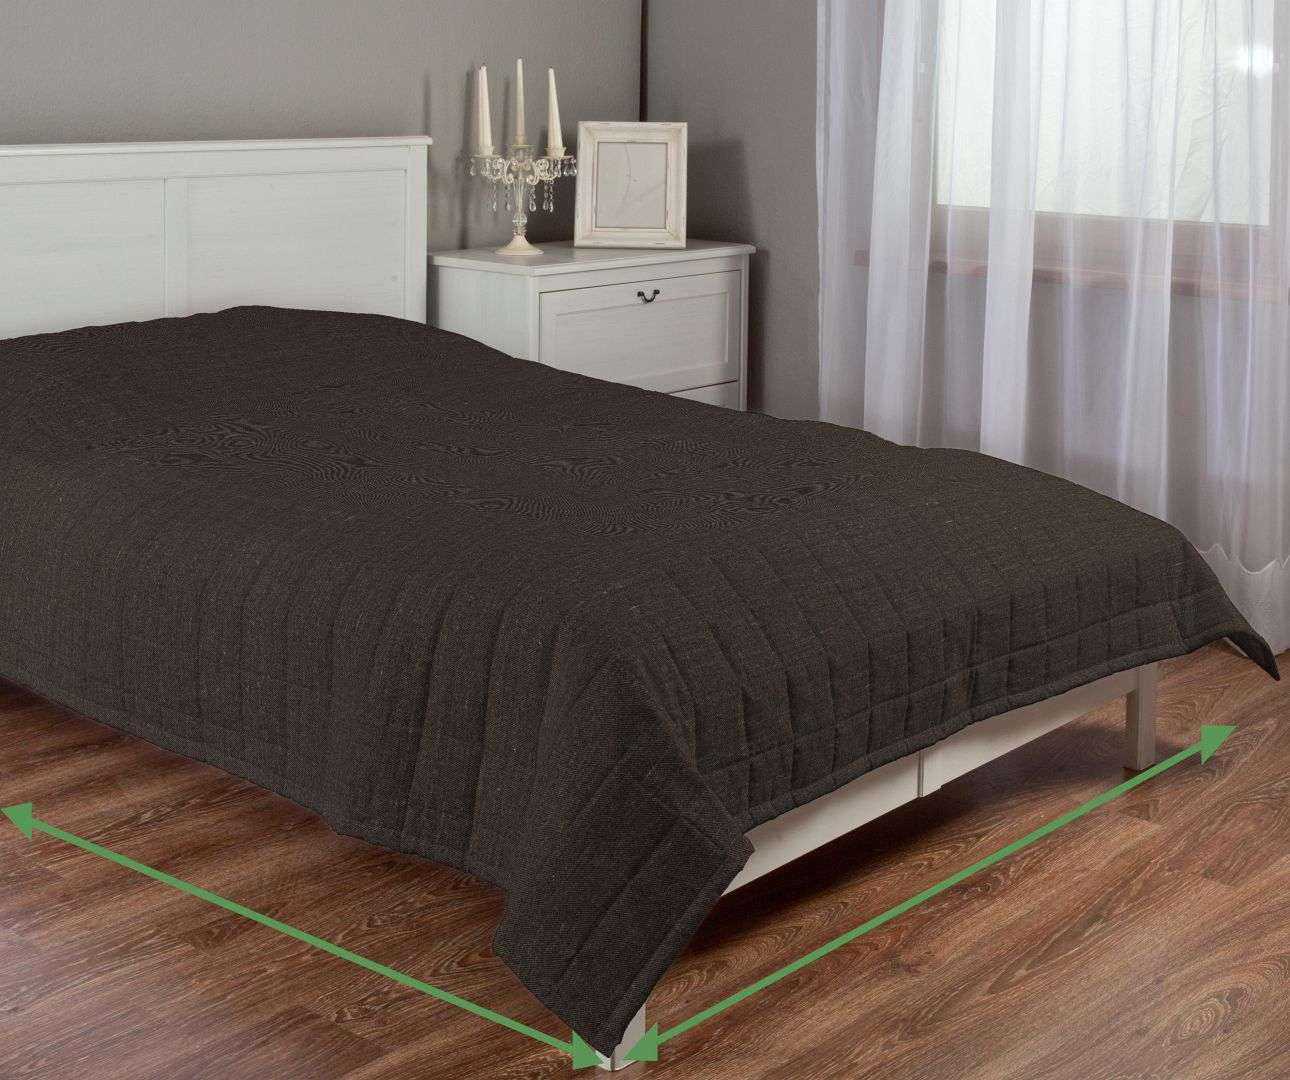 Quilted throw (check quilt pattern) in collection Porto, fabric: 160-19